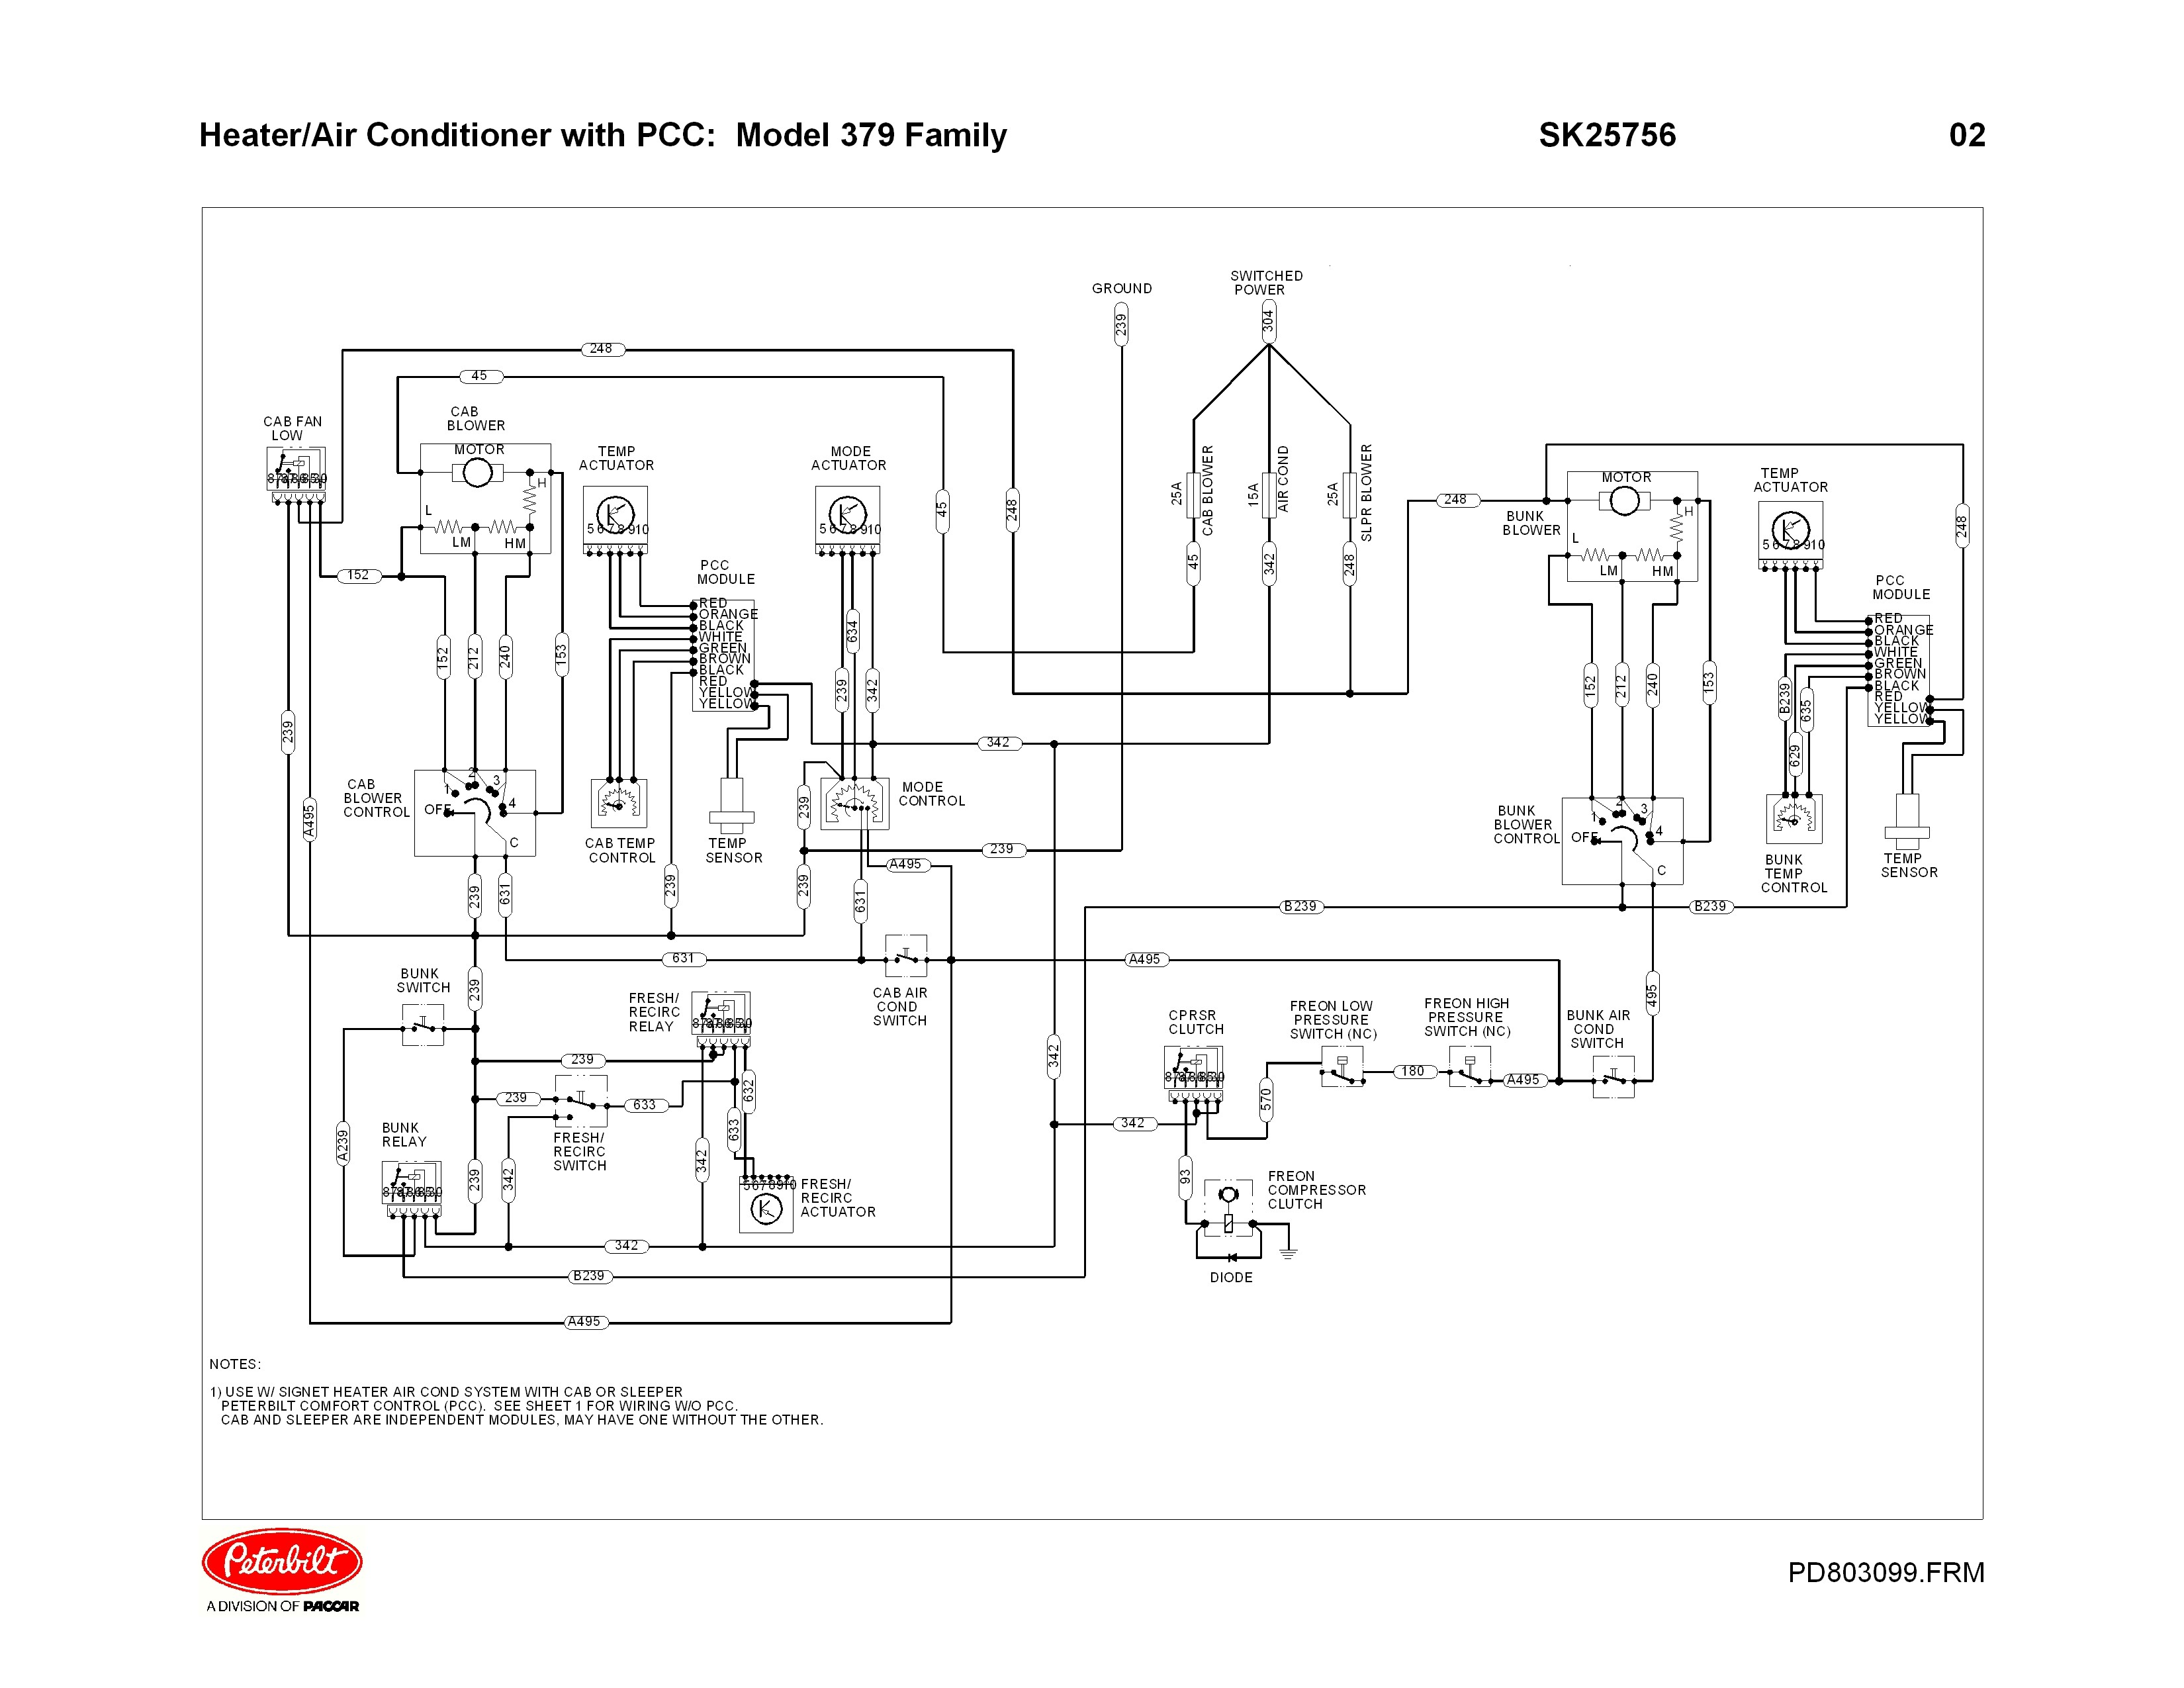 1995 peterbilt 379 fuse panel diagram 1995 image blower dont work in sleeper 1998 379 on 1995 peterbilt 379 fuse panel diagram